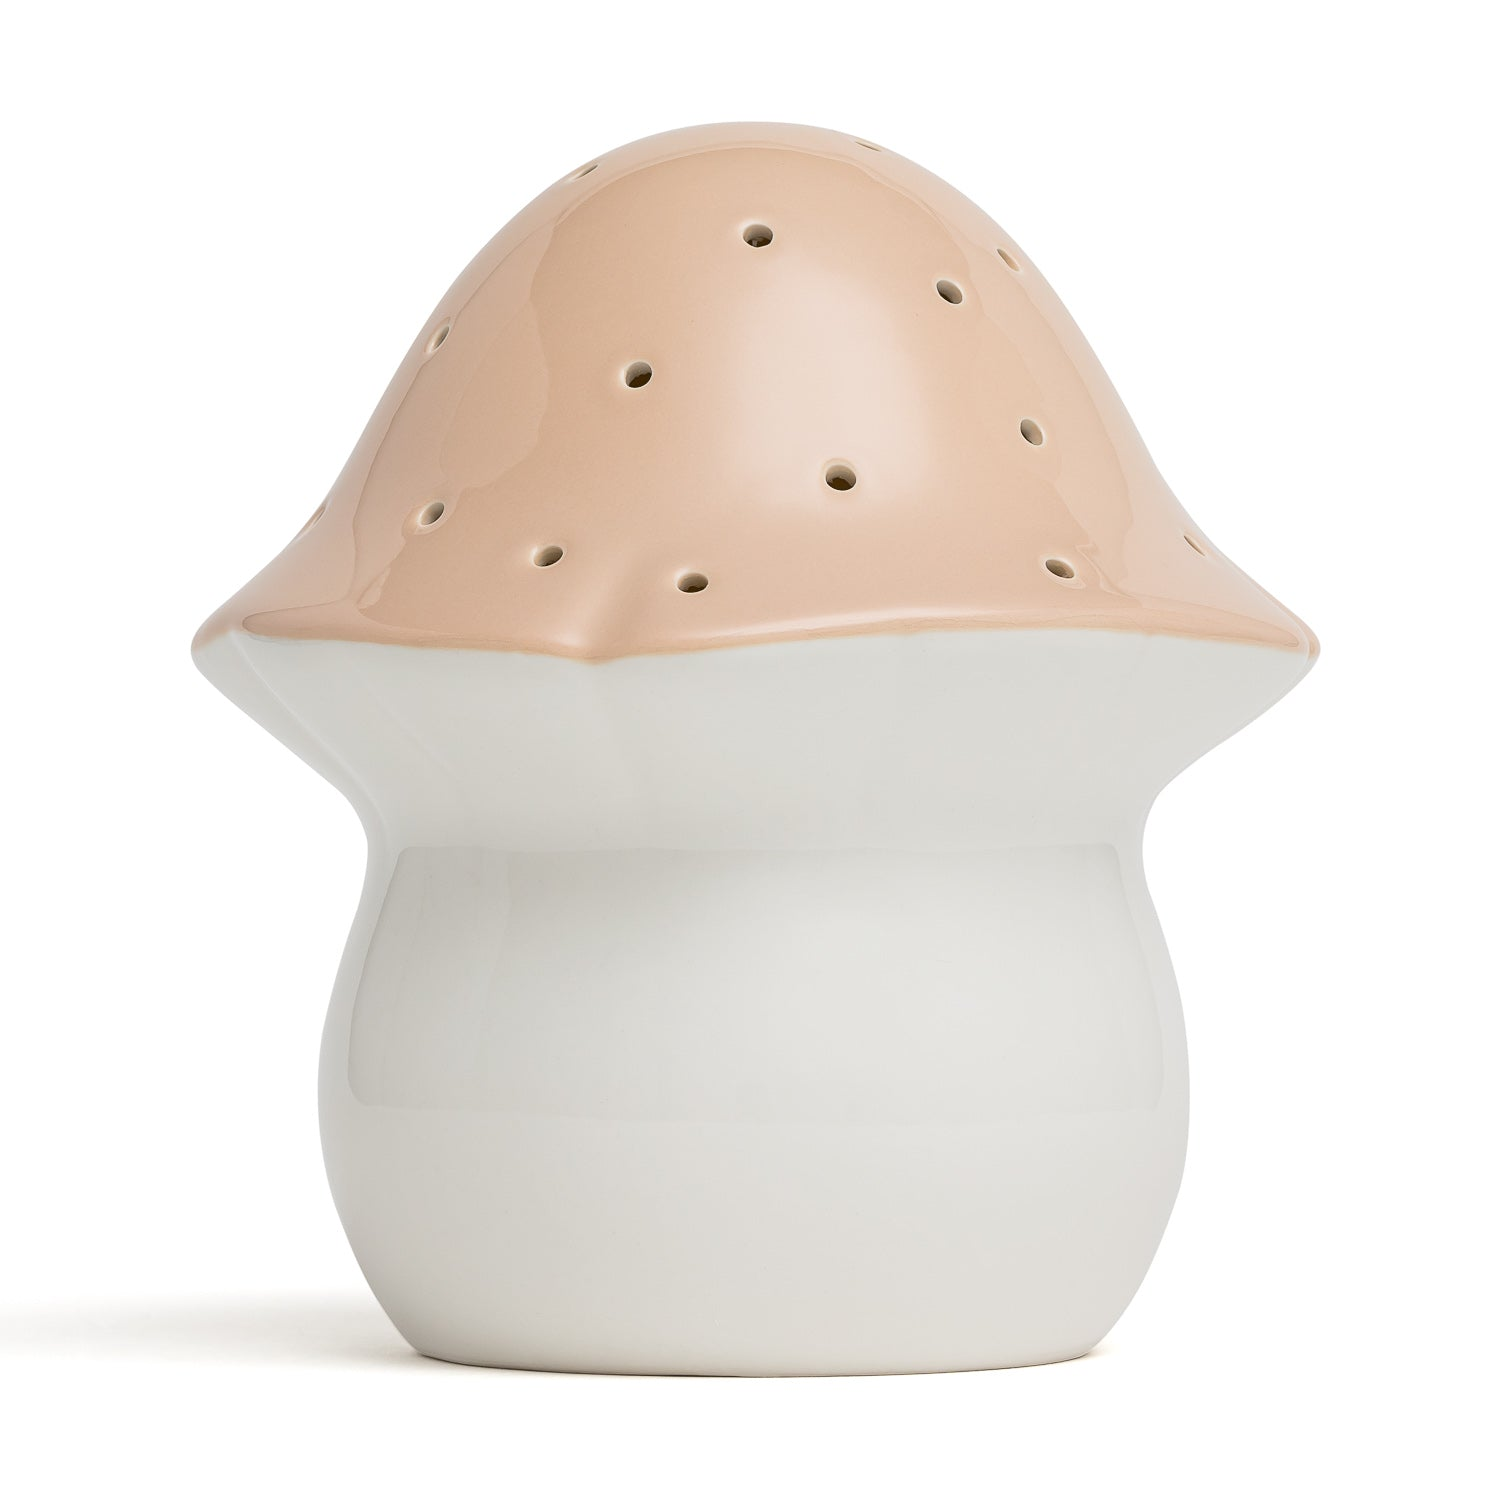 Little Belle Toadstool Nightlight - Peach [Battery]